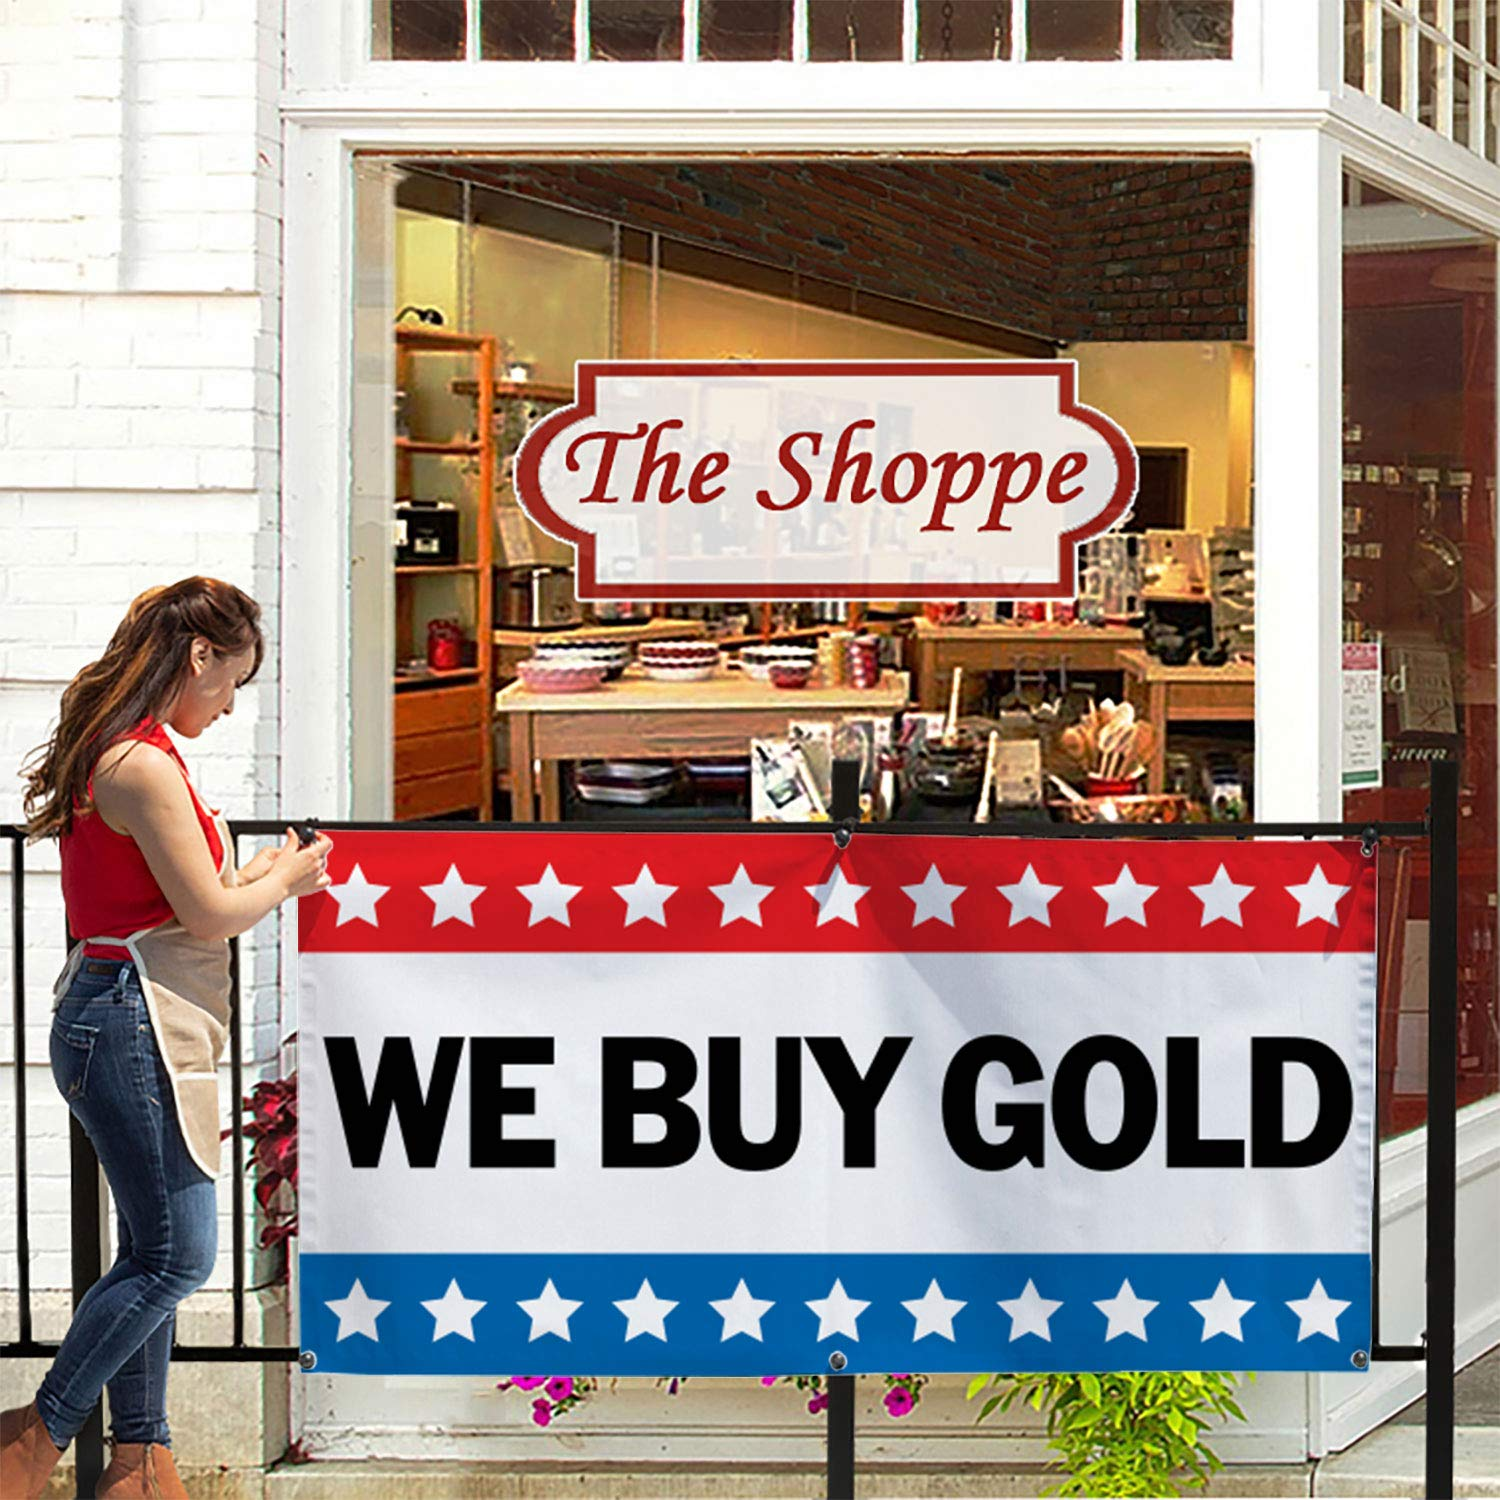 Easy Hang Sign-Made in USA HALF PRICE BANNERS Includes Ball Bungees /& Zip Ties We Buy Gold Vinyl Banner -Heavy Duty Outdoor 4X8 Foot -Yellow